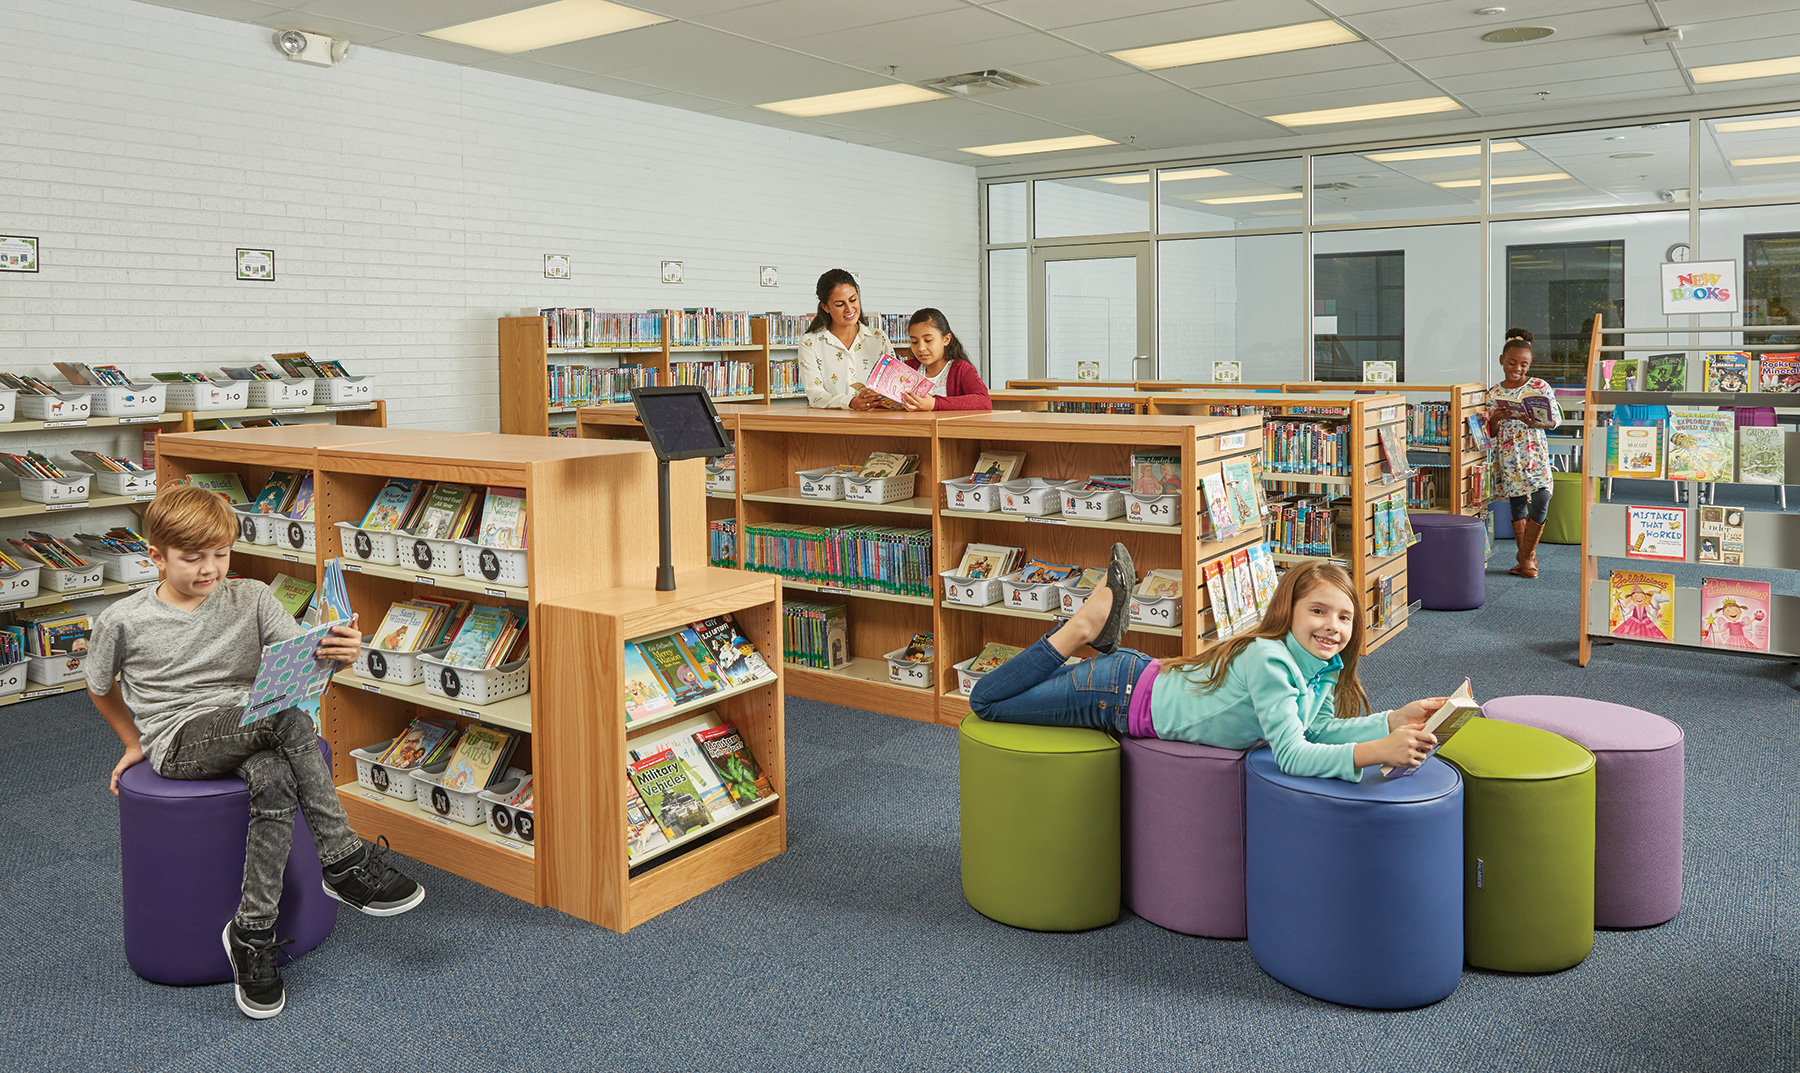 Flexible Child Space on Display